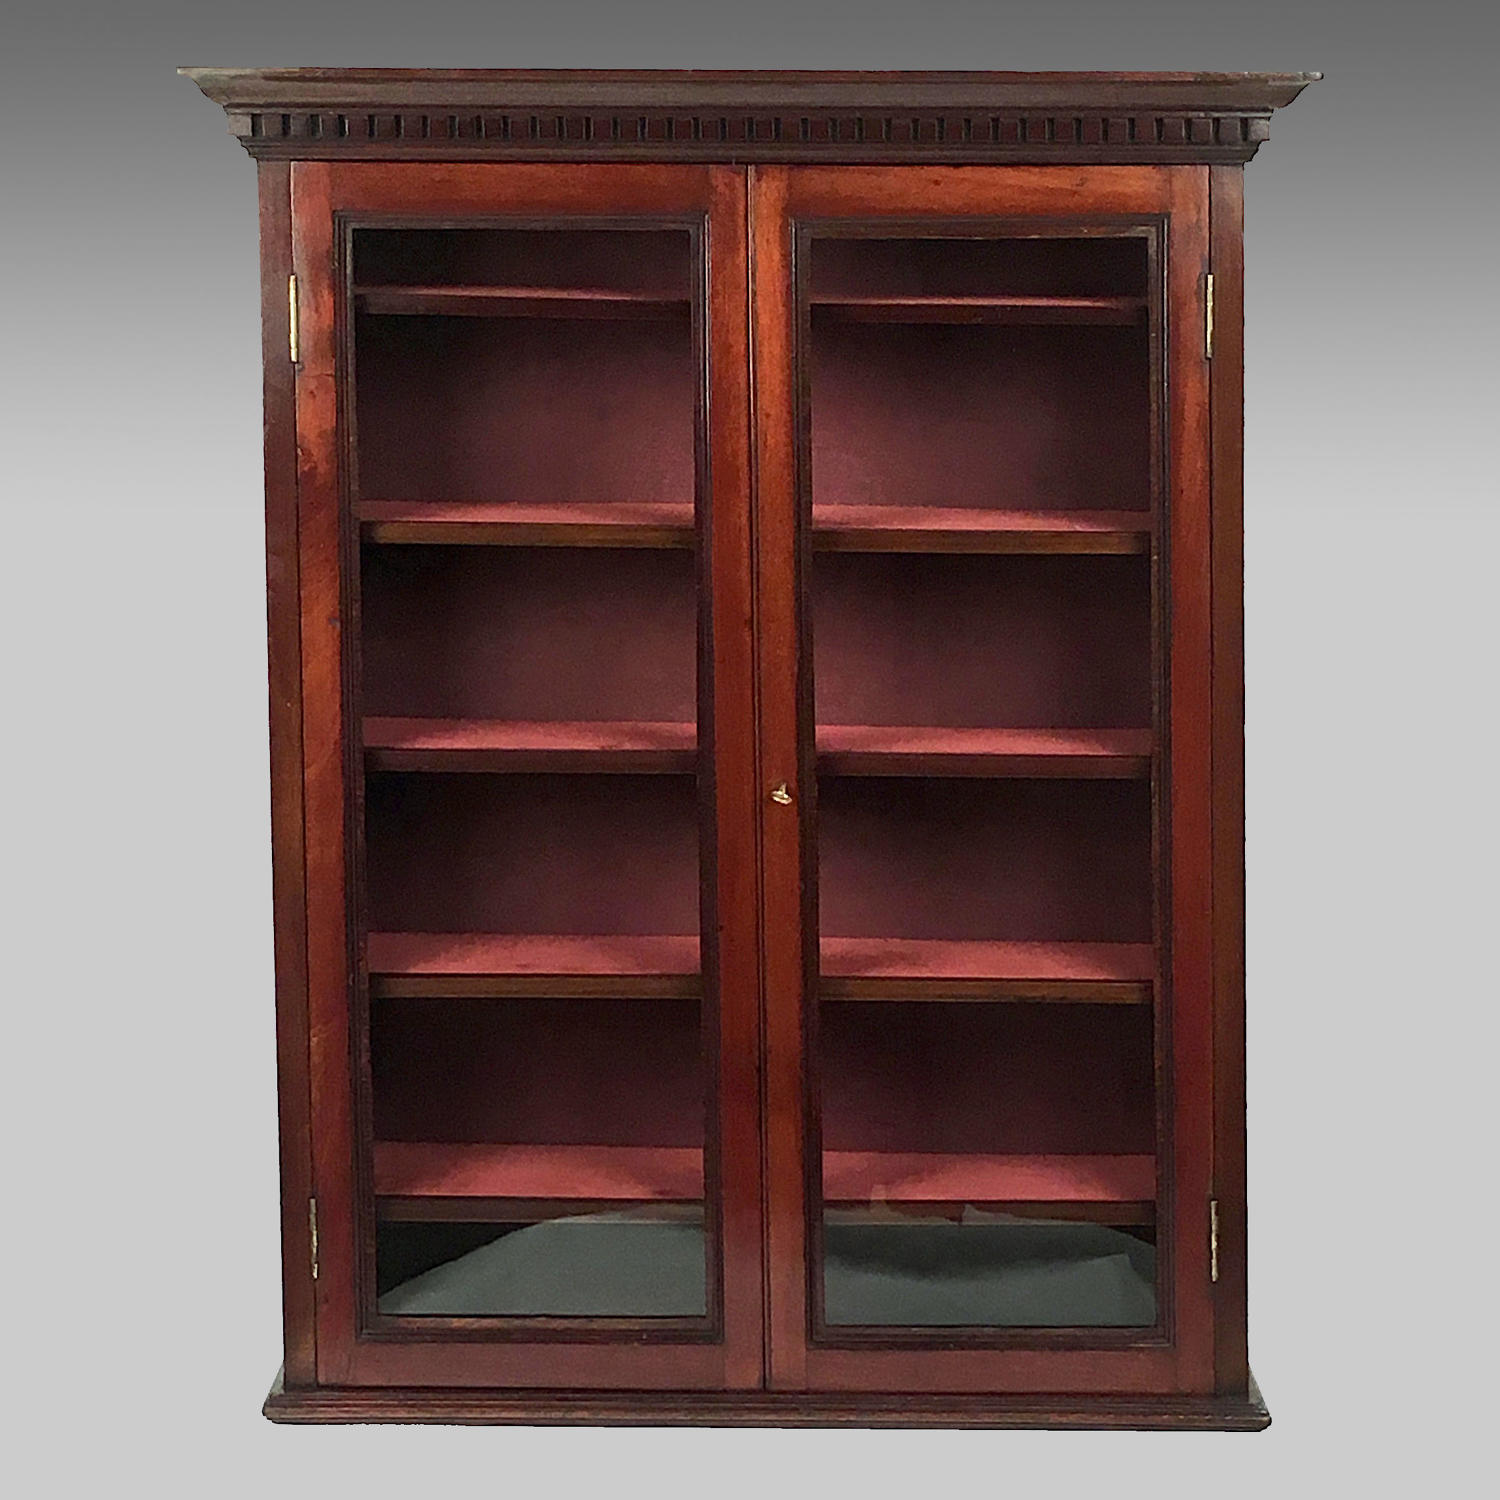 Late 19th century mahogany display cabinet